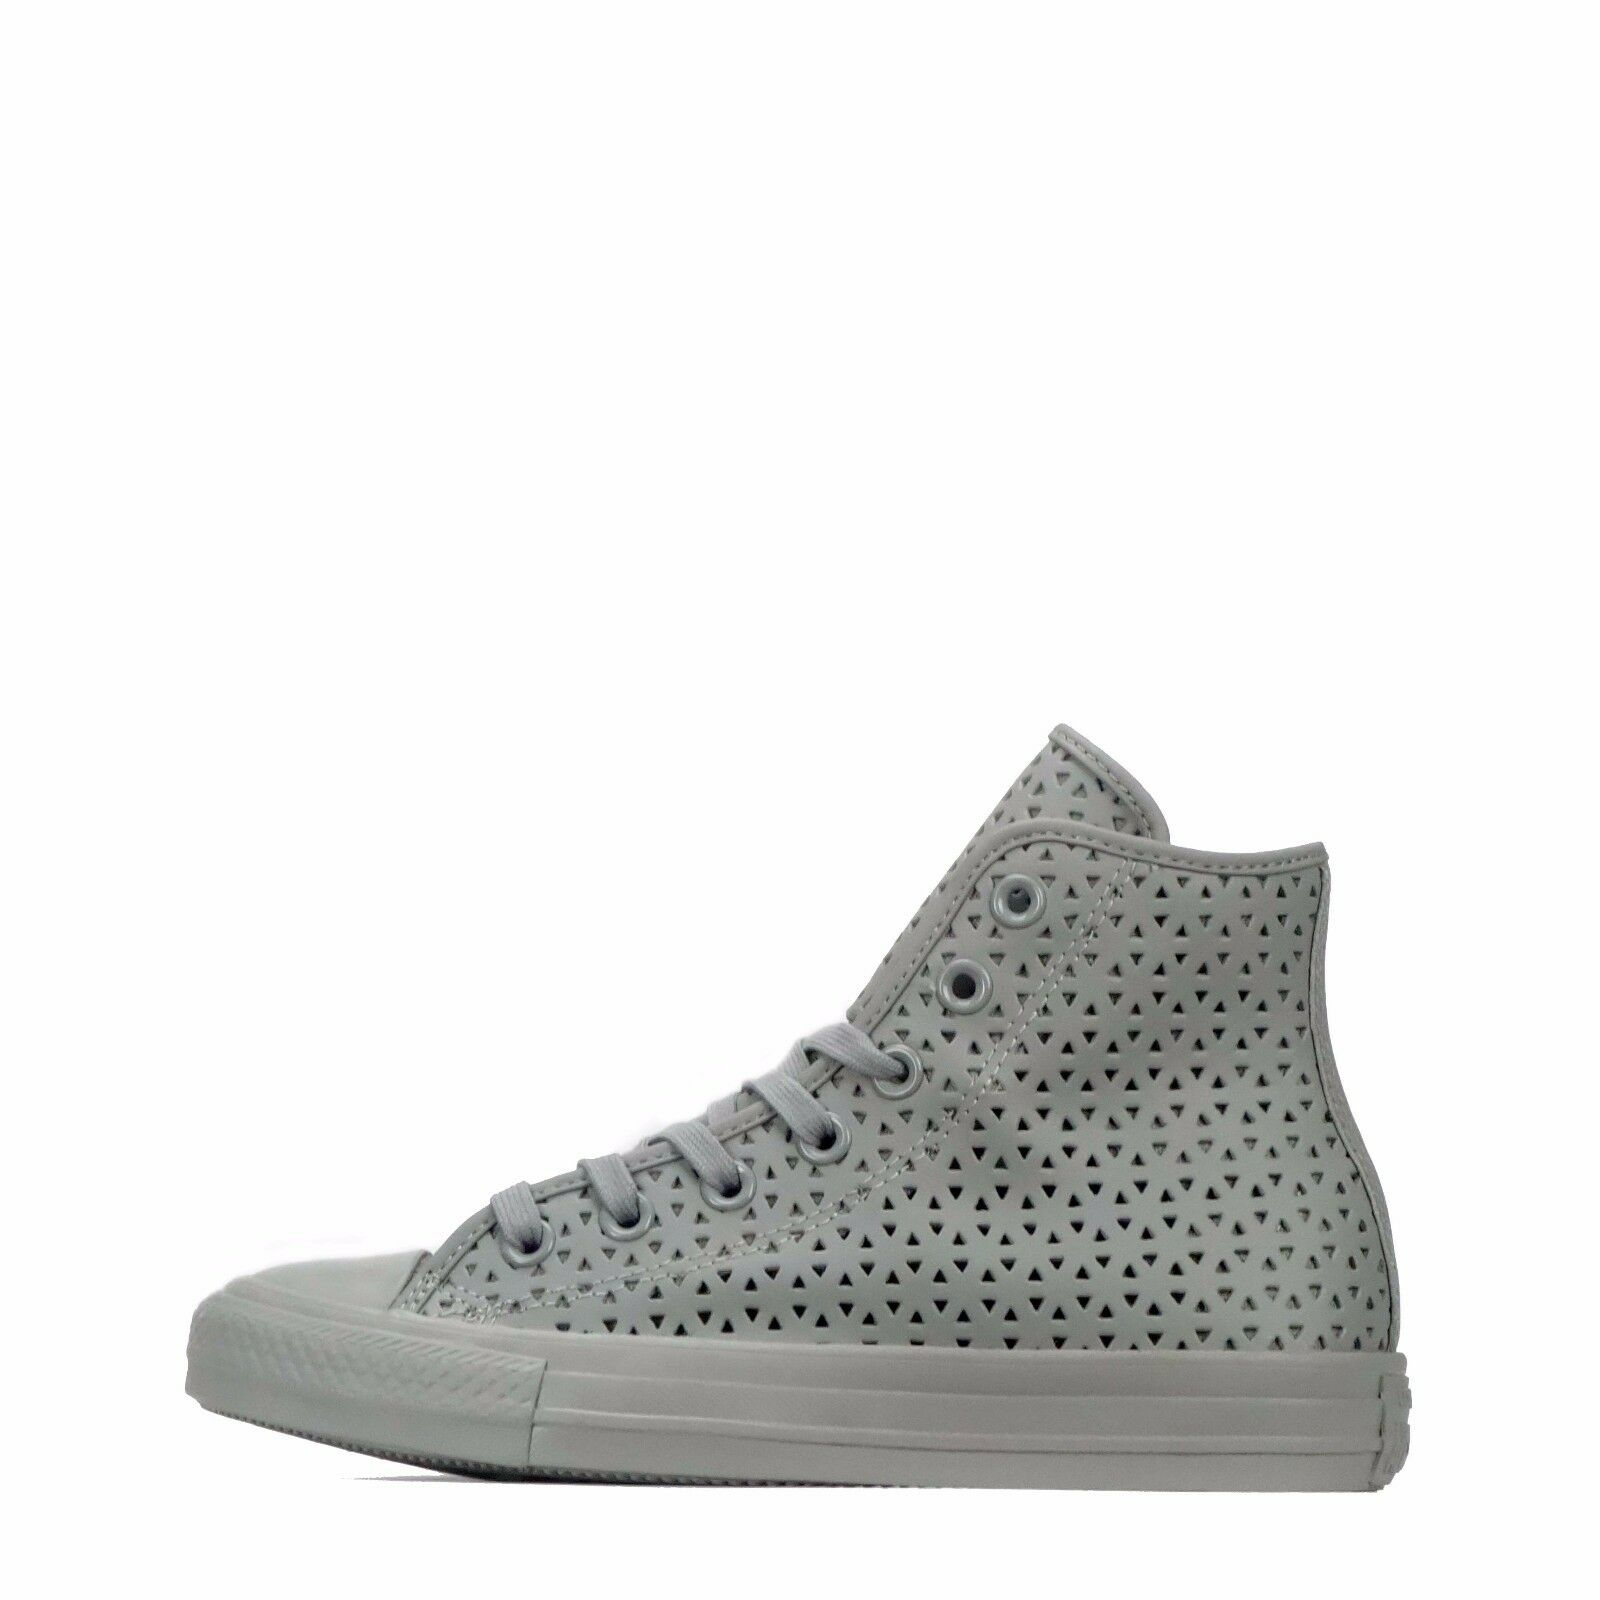 Converse Converse Converse Chuck Taylor All Star Hi Perforated Women's Shoes Dolphin Grey e4f1f3